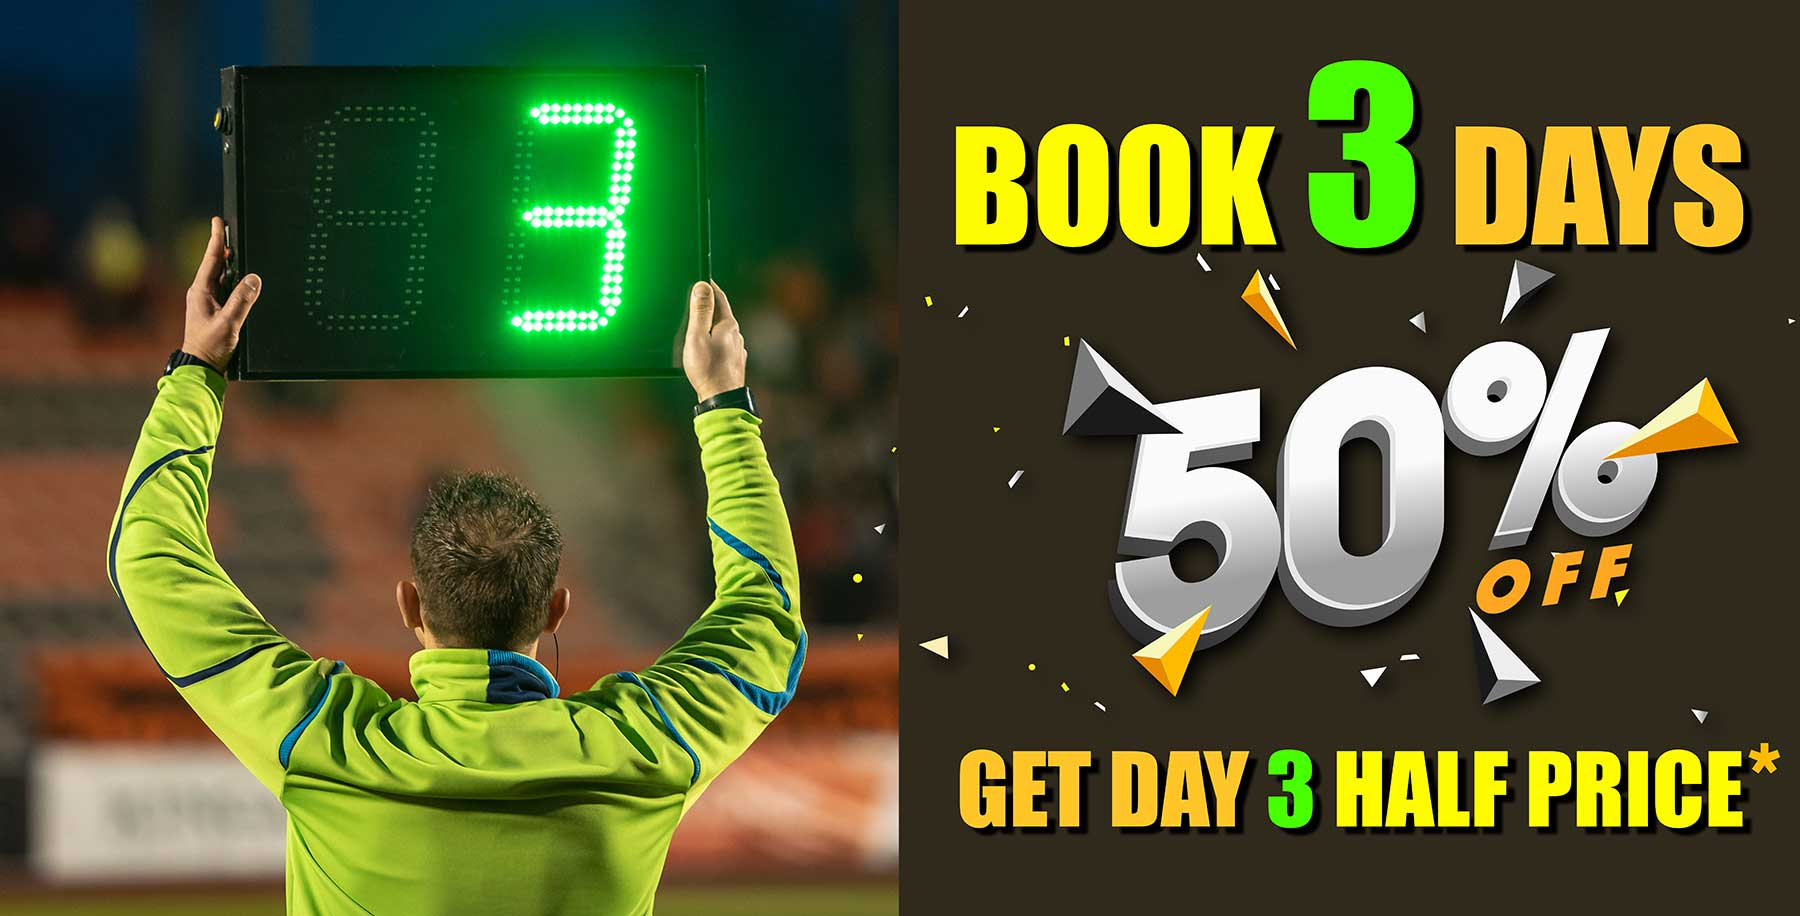 Book 3 Days and get 50% off the 3rd Day Hire Fee - Sydney Props Photo Studios